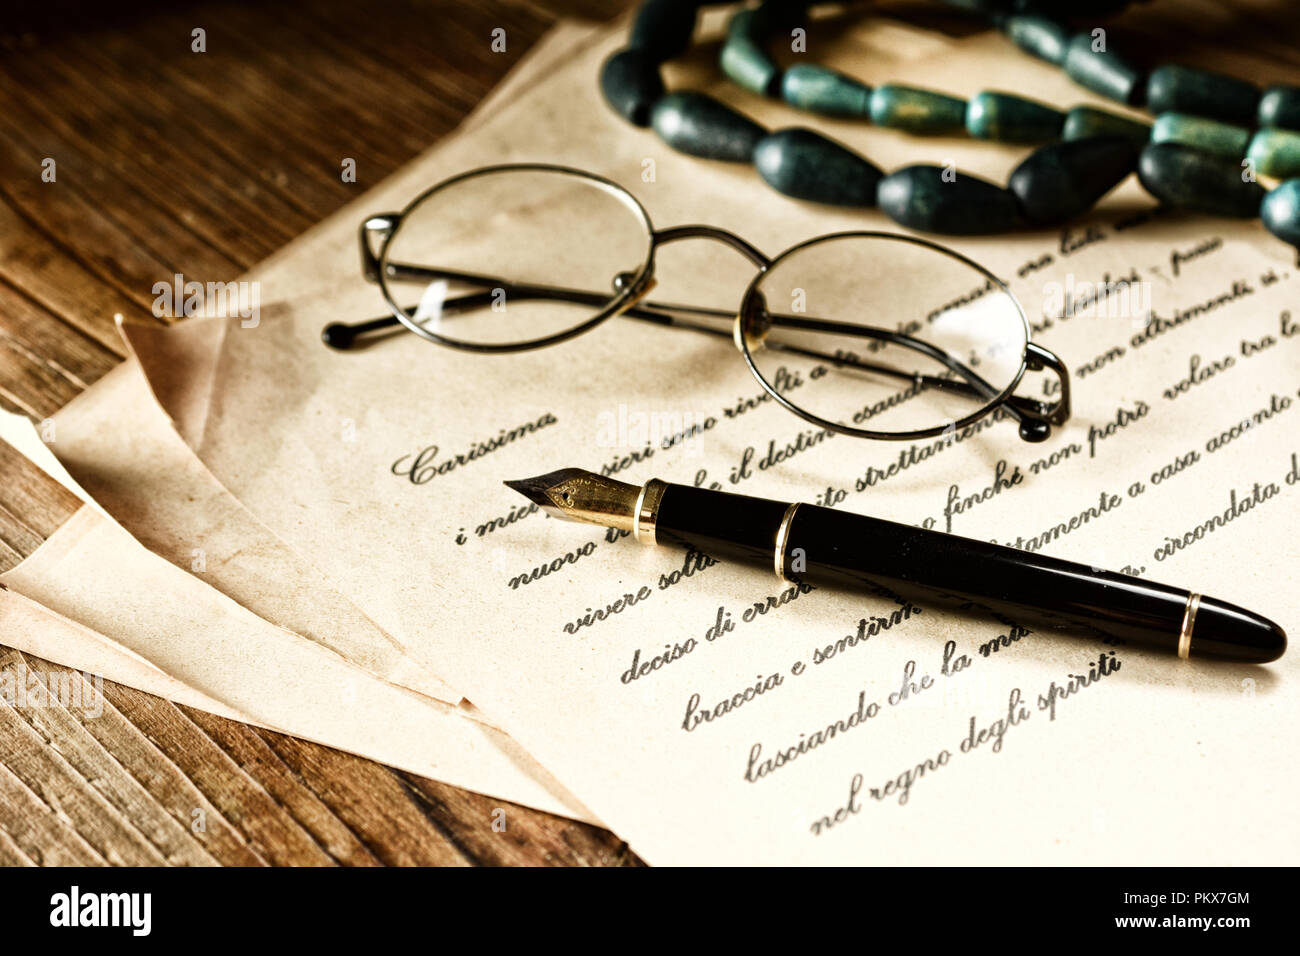 love letter with fountain pen - vintage effect - closeup - Stock Image